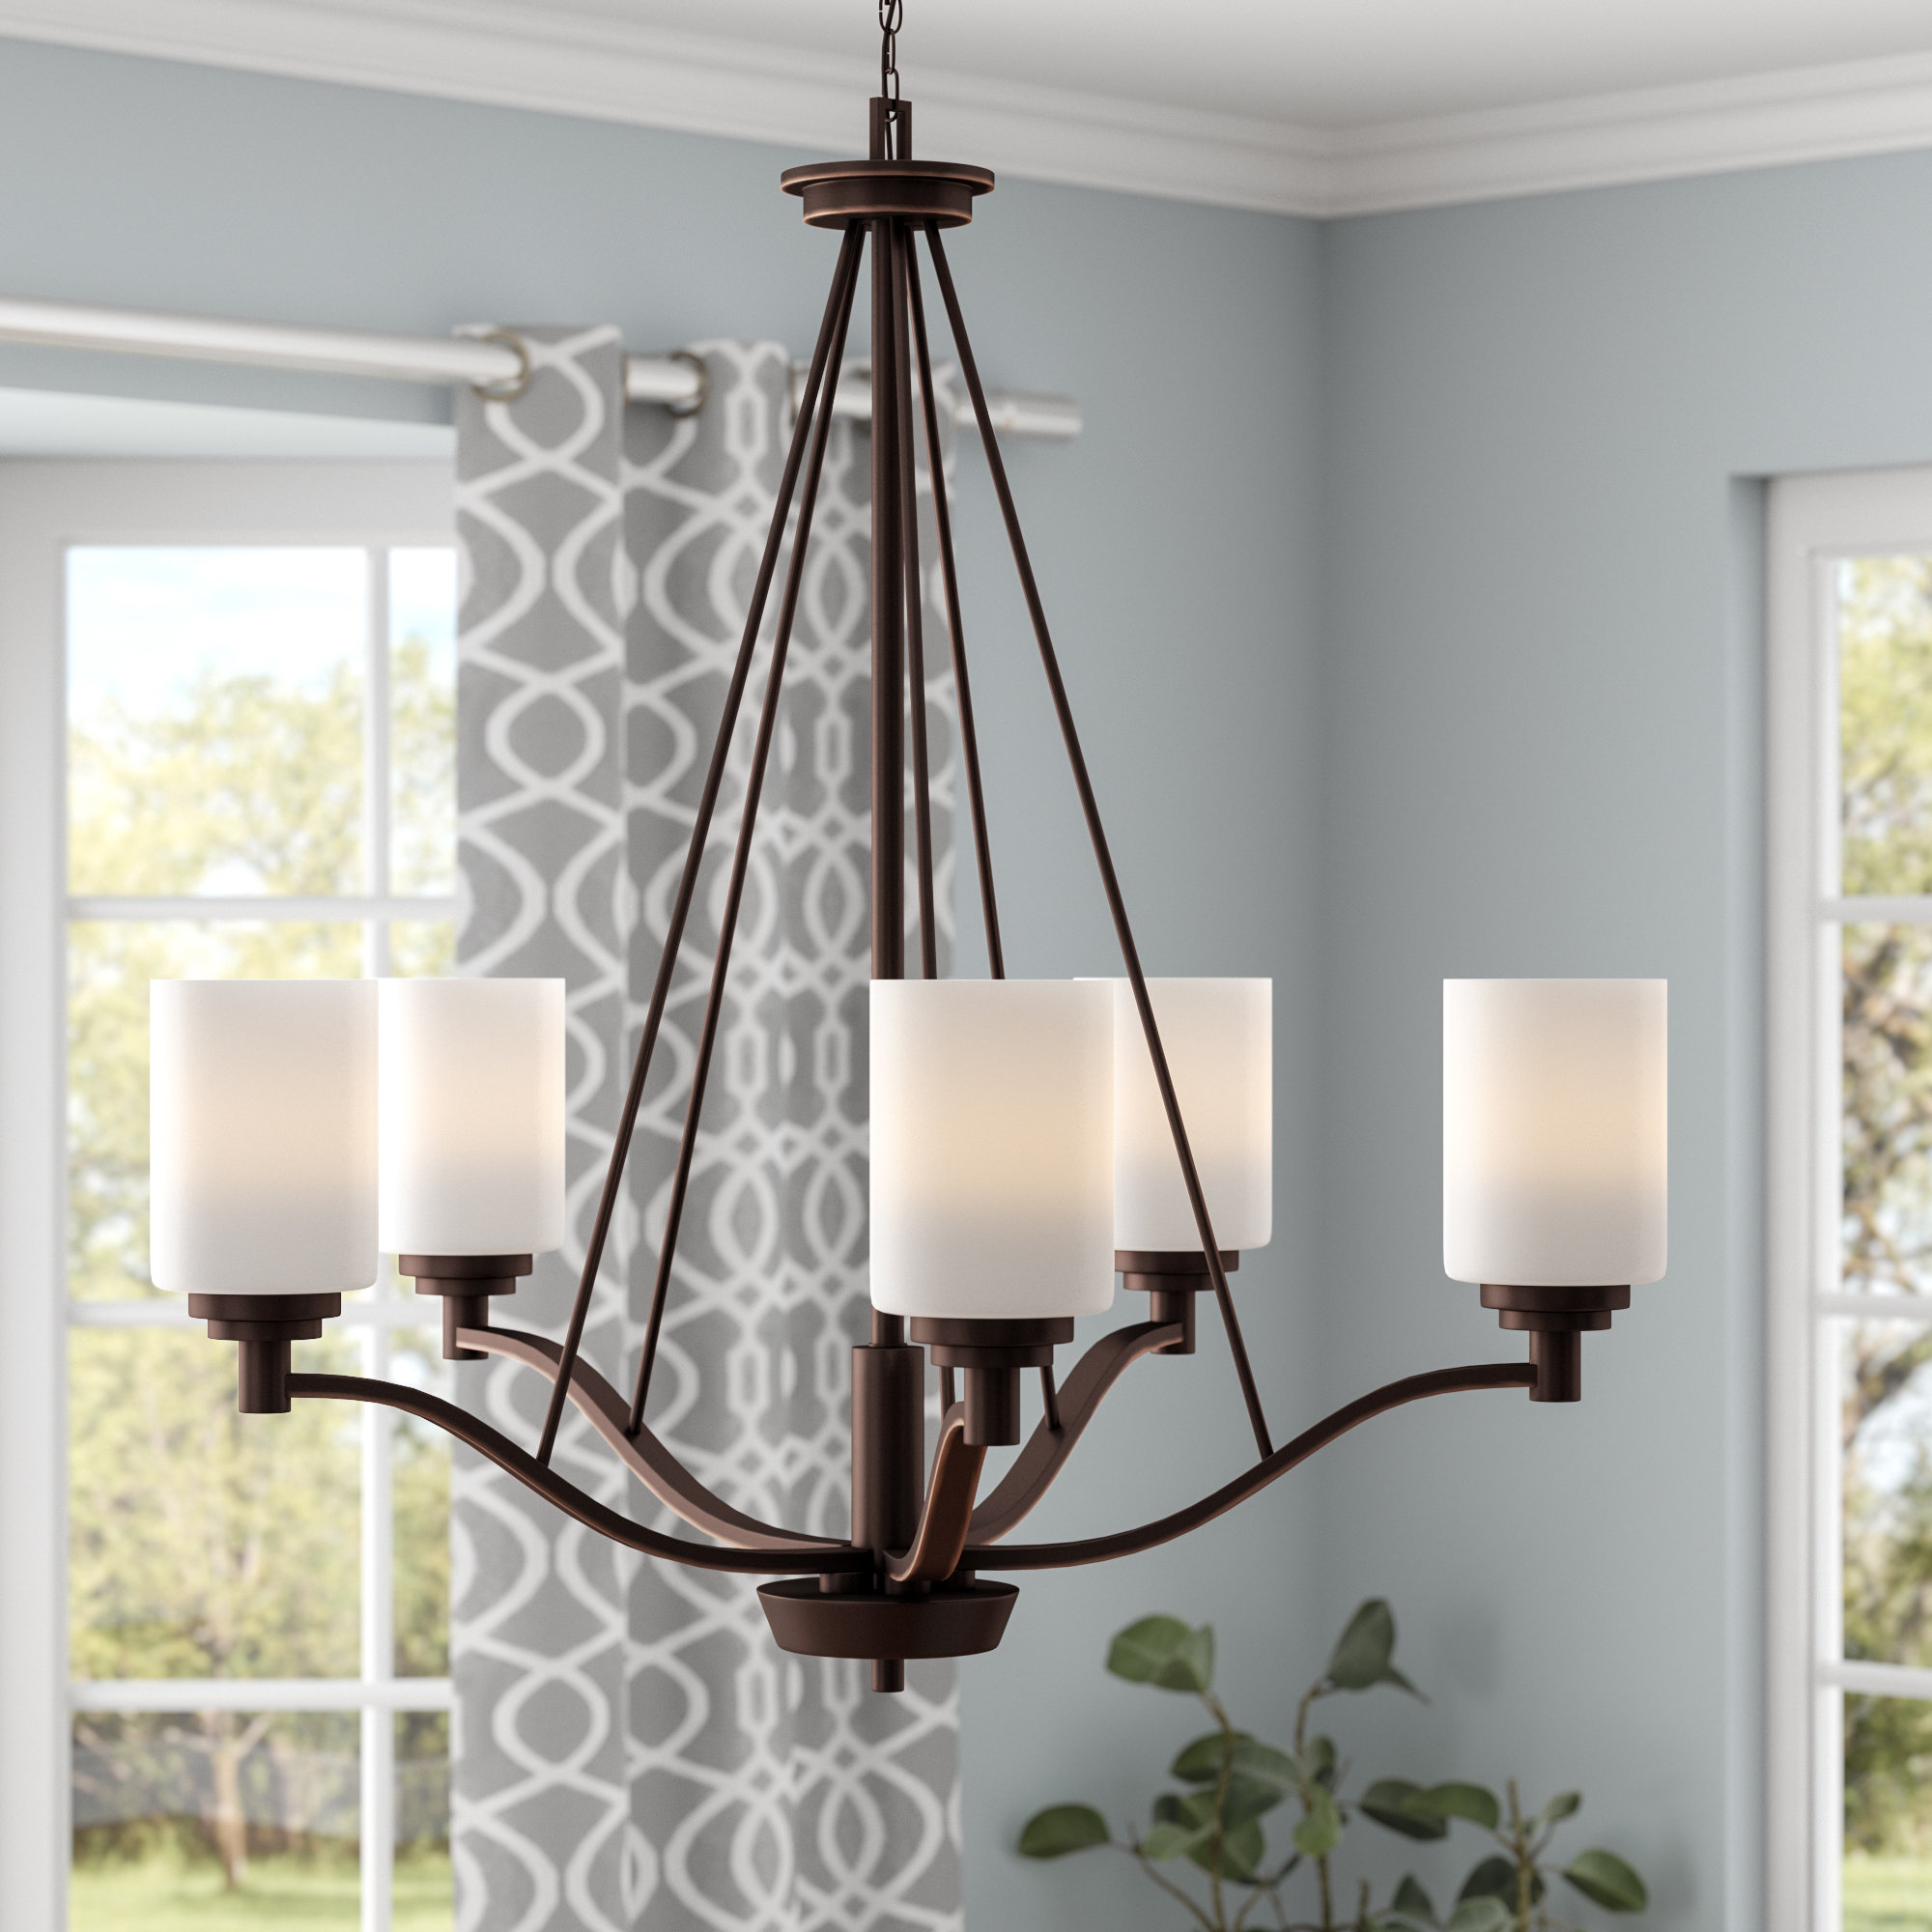 Hester 5-Light Shaded Chandelier throughout Favorite Newent 5-Light Shaded Chandeliers